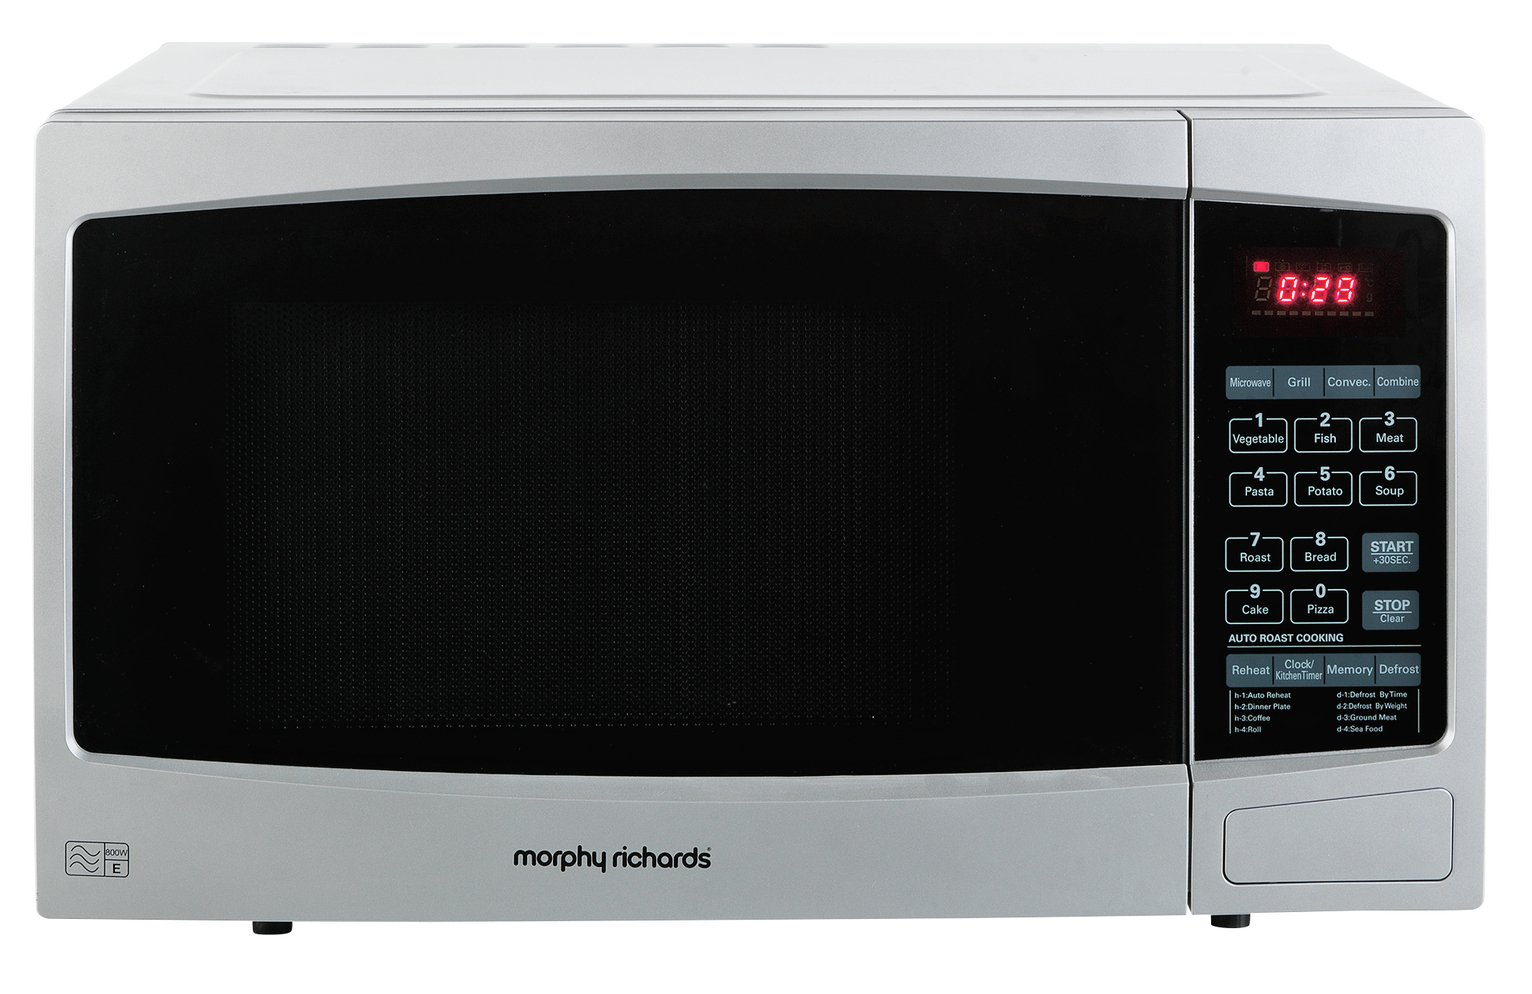 Morphy Richards - E23 23L 800W Combination Touch S